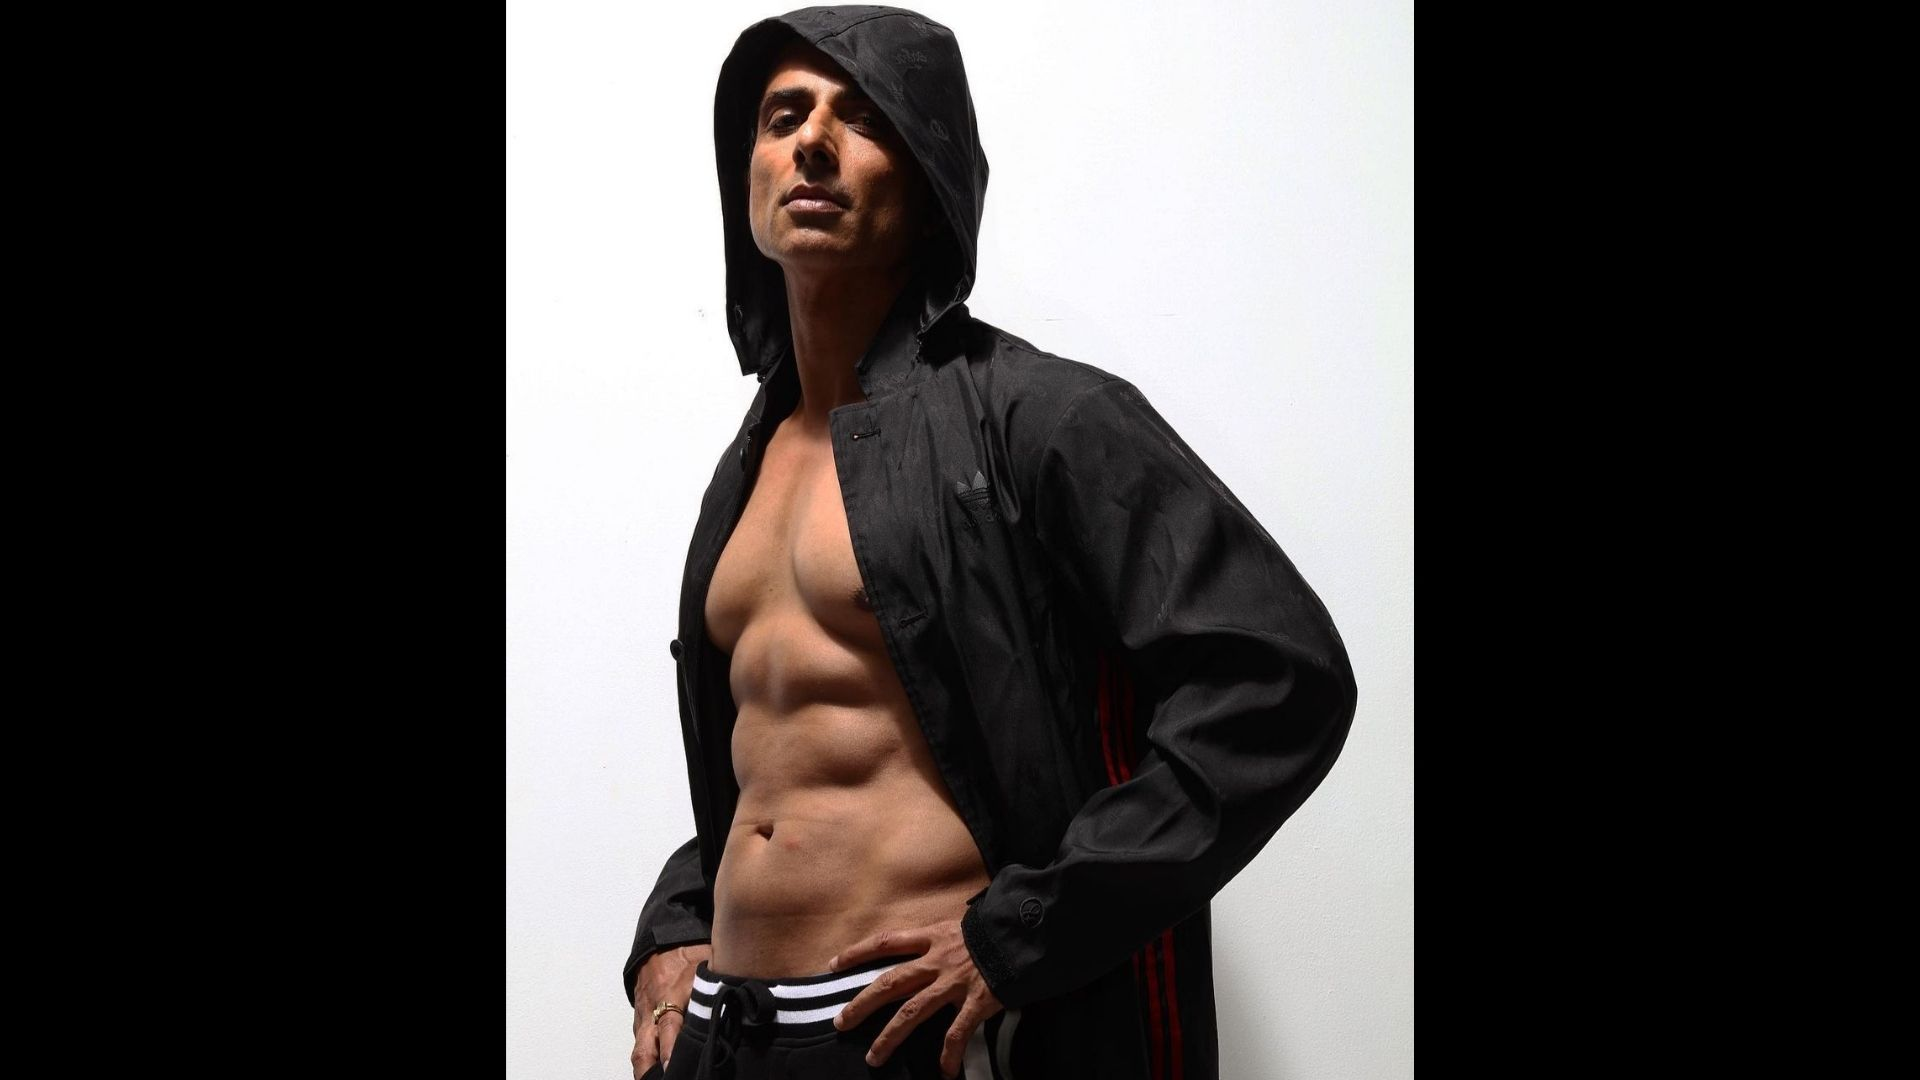 Sonu Sood Gives The Glimpses Of His Fit Body; Performs The Human Flag In Throwback Workout Video